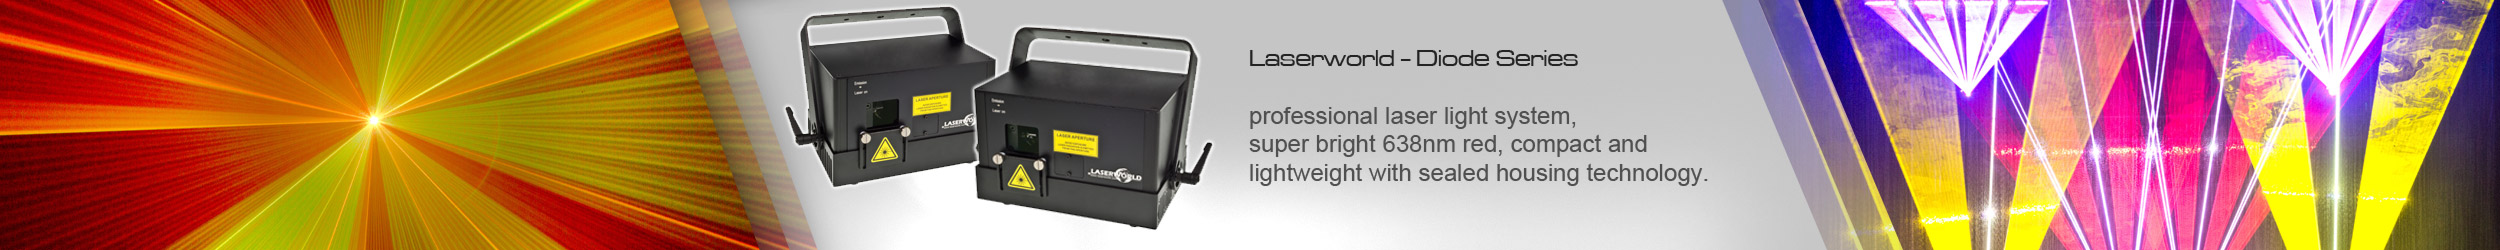 Laserworld-header_DS_series_2016.jpg